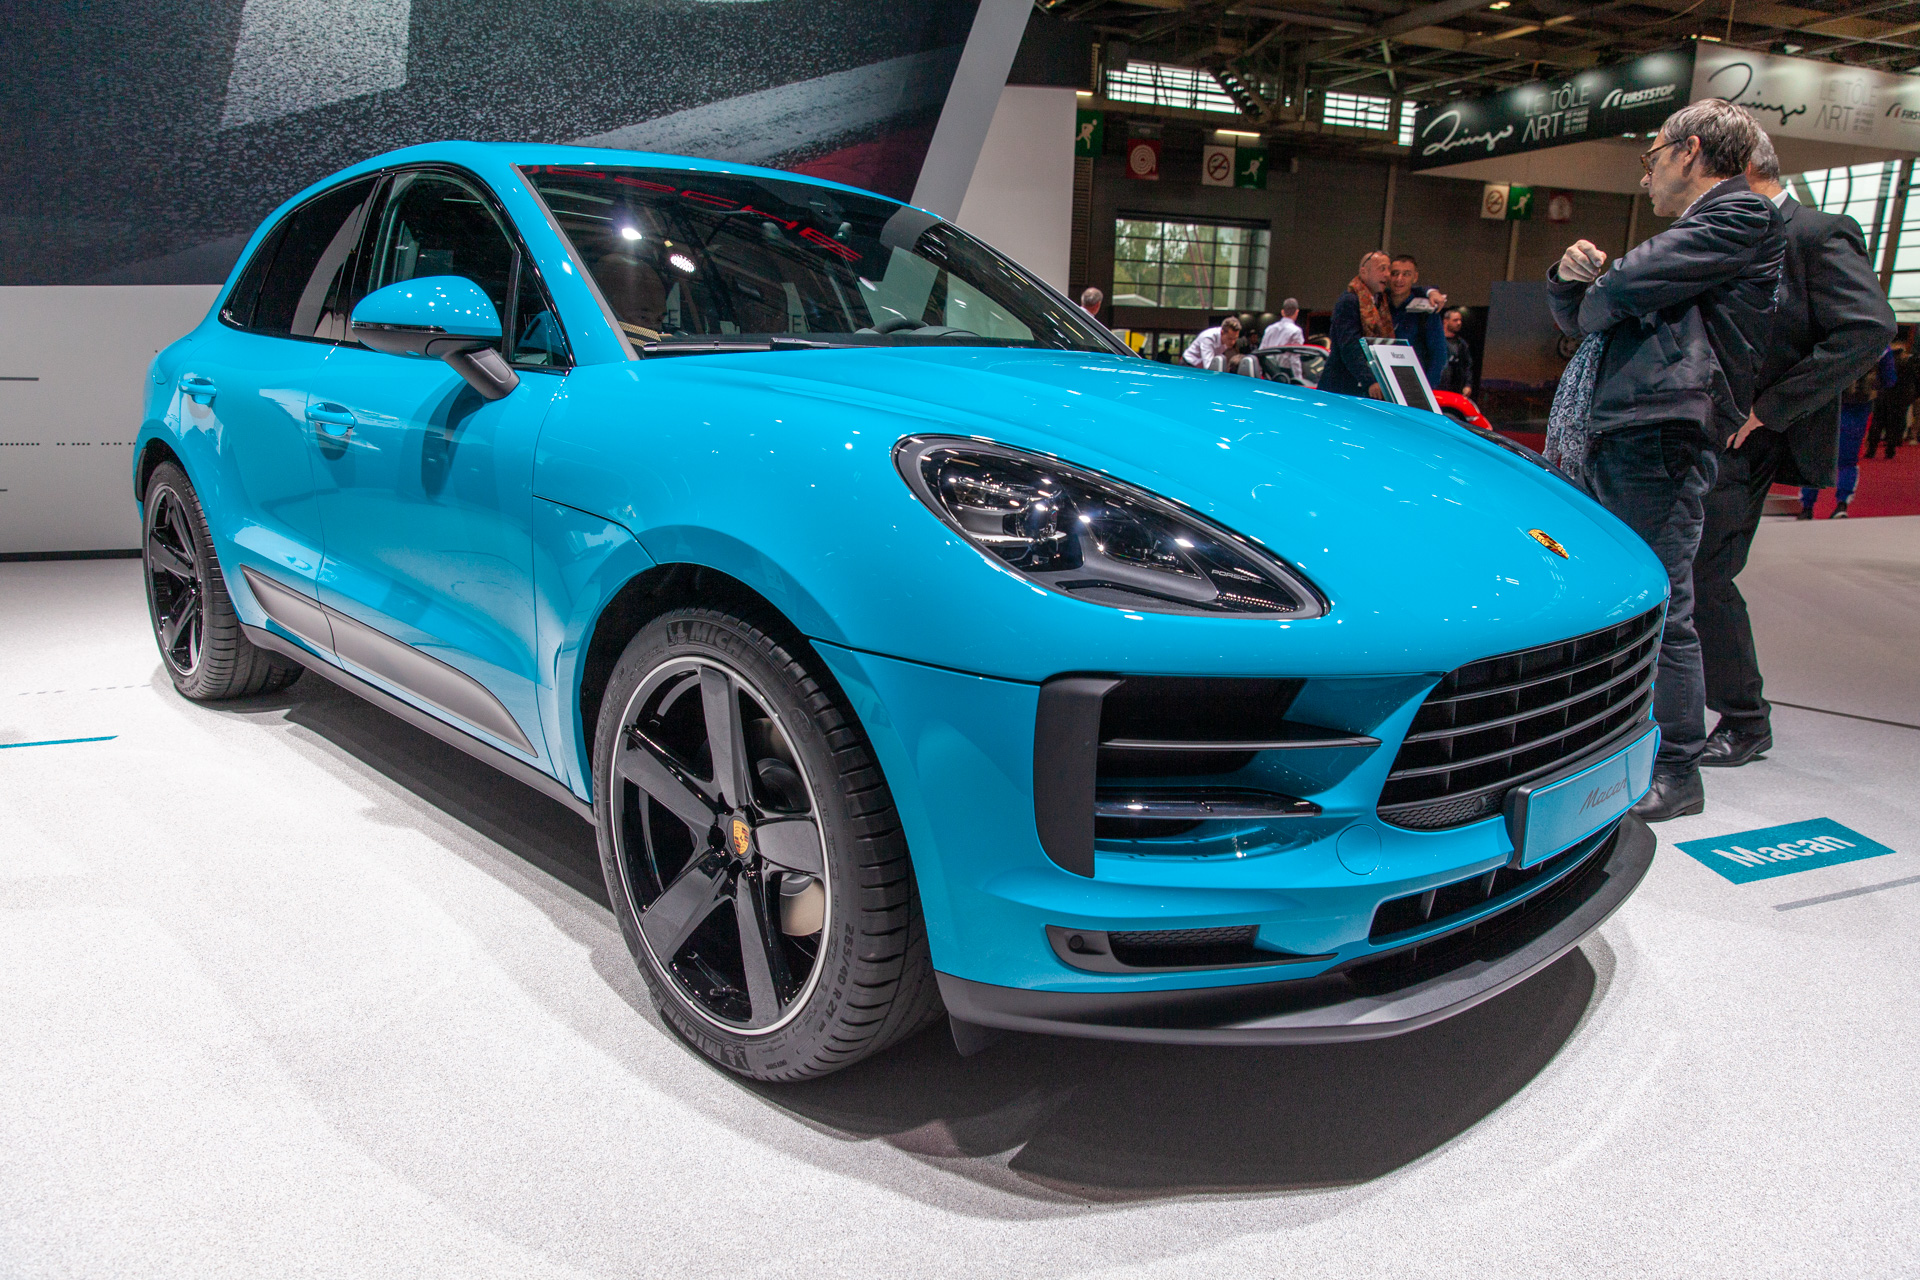 59 New 2020 Porsche Macan Prices